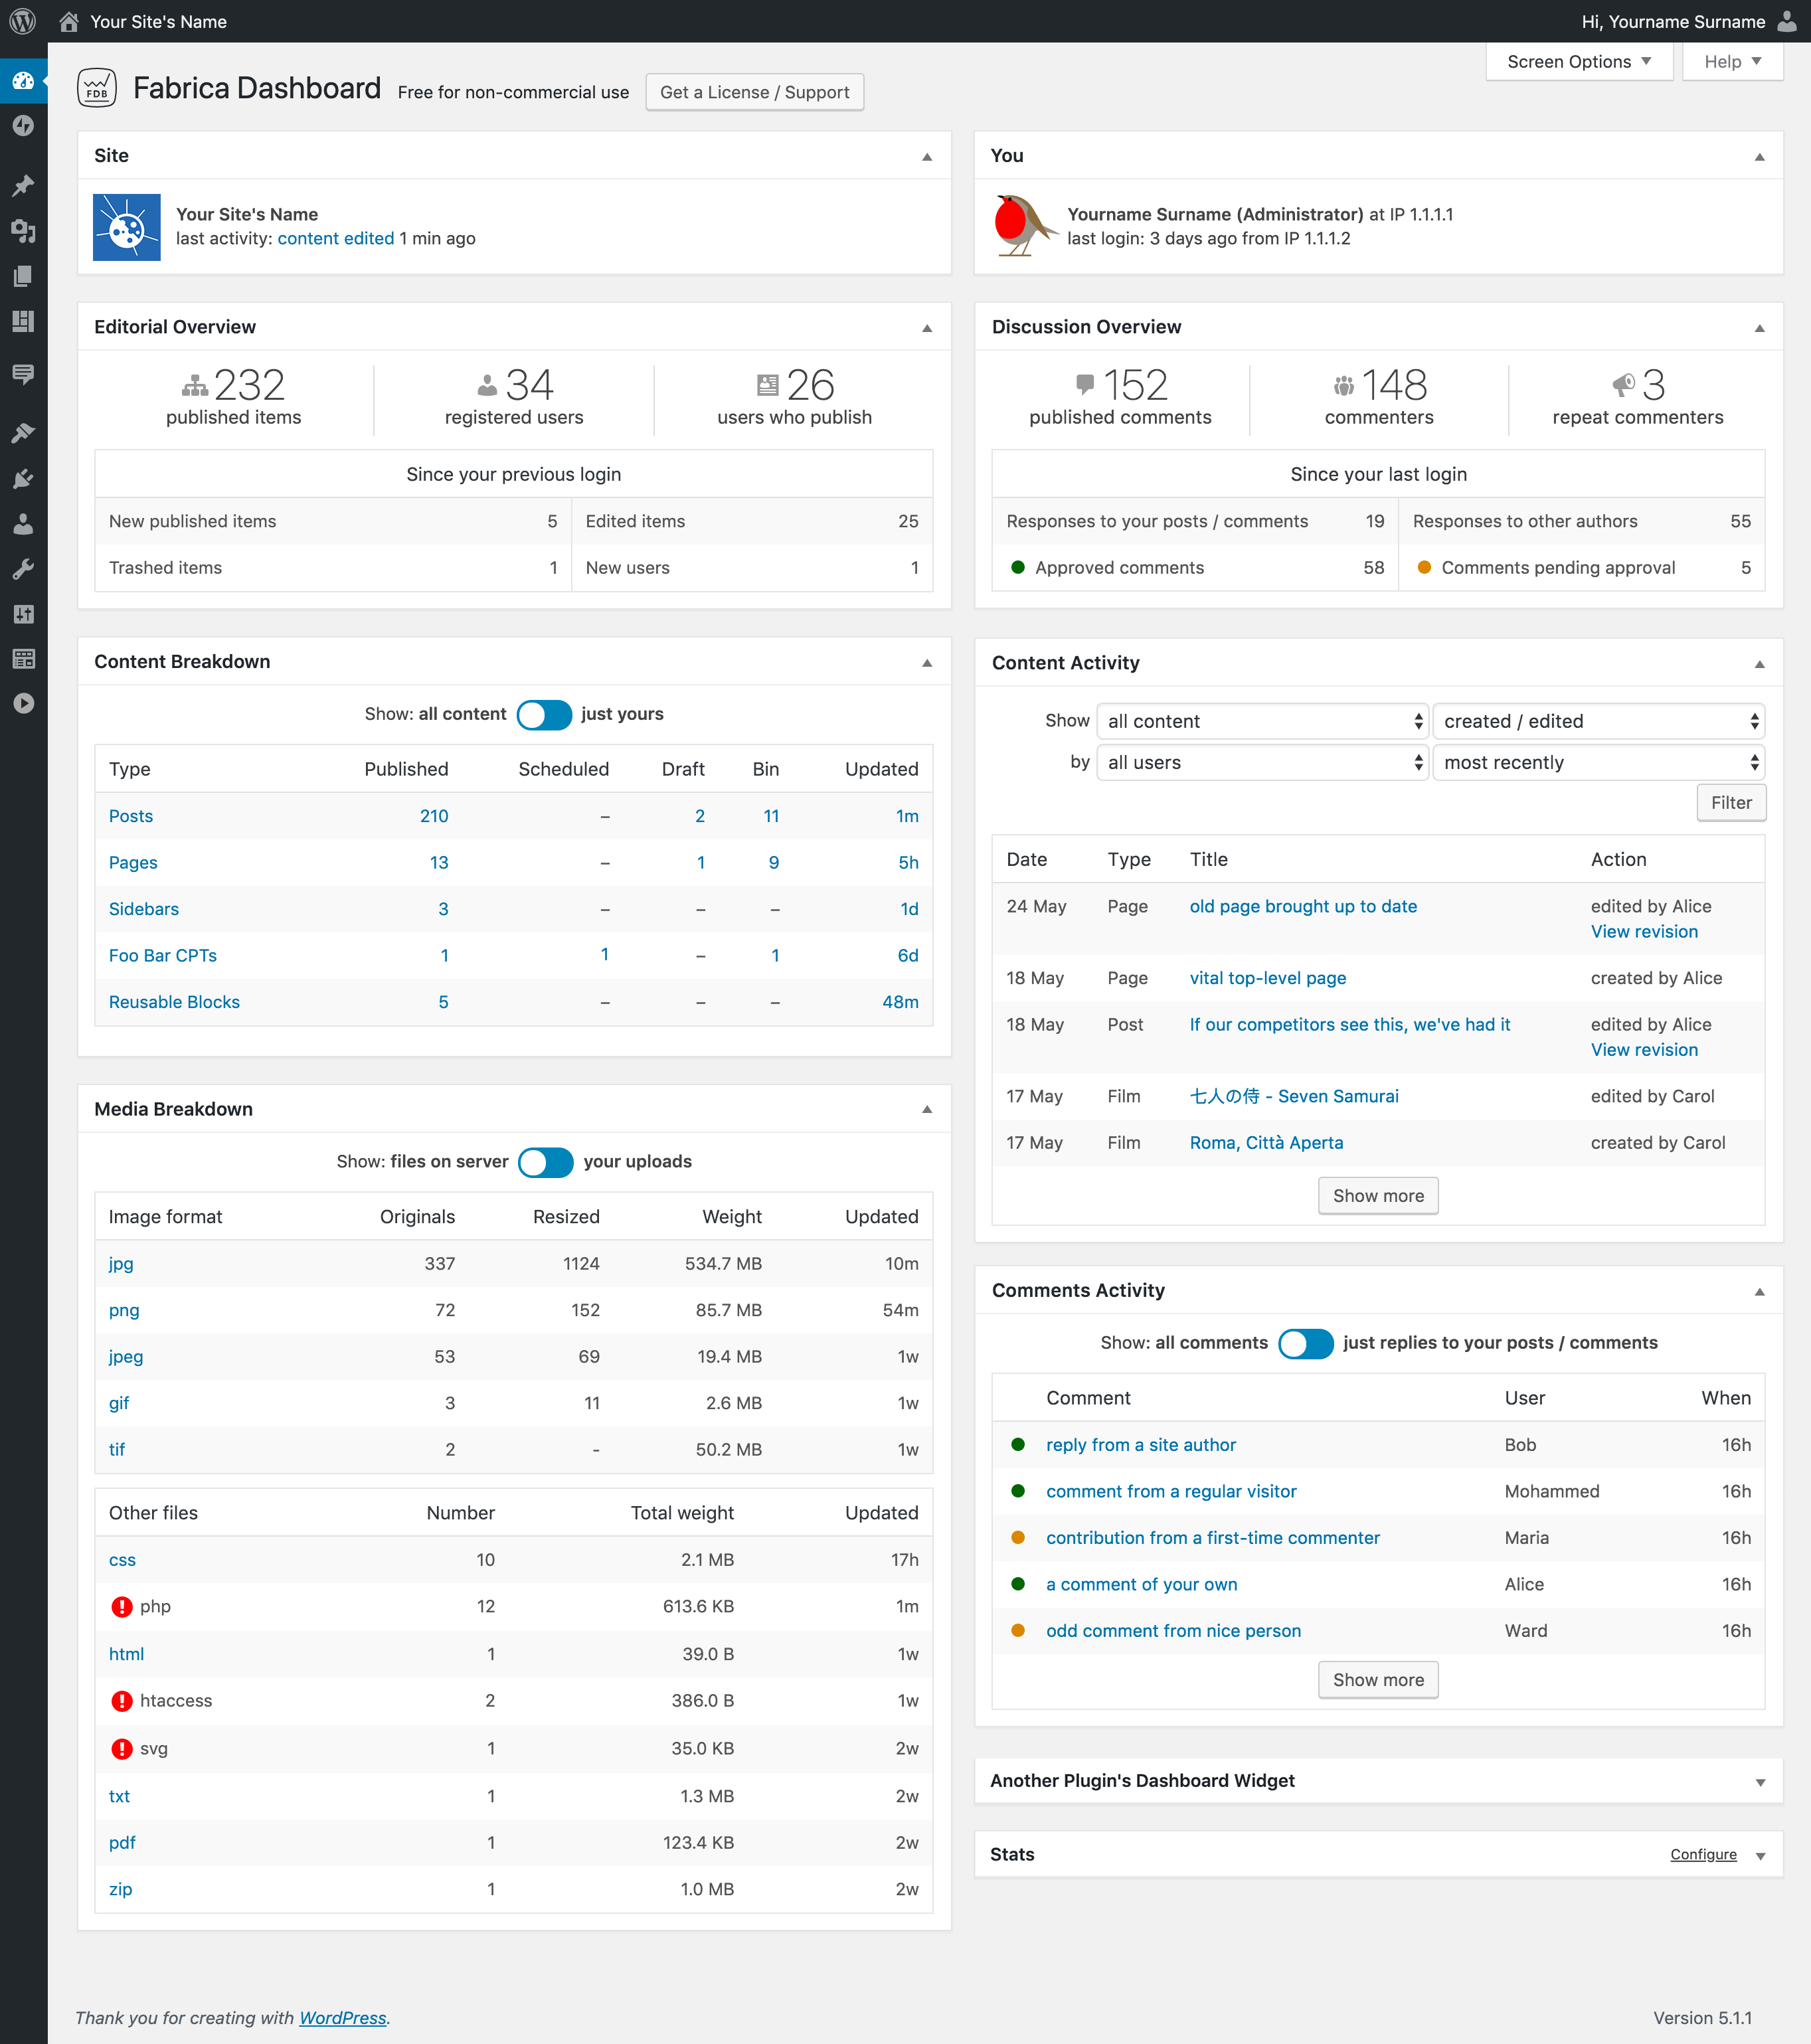 Full view of Fabrica Dashboard